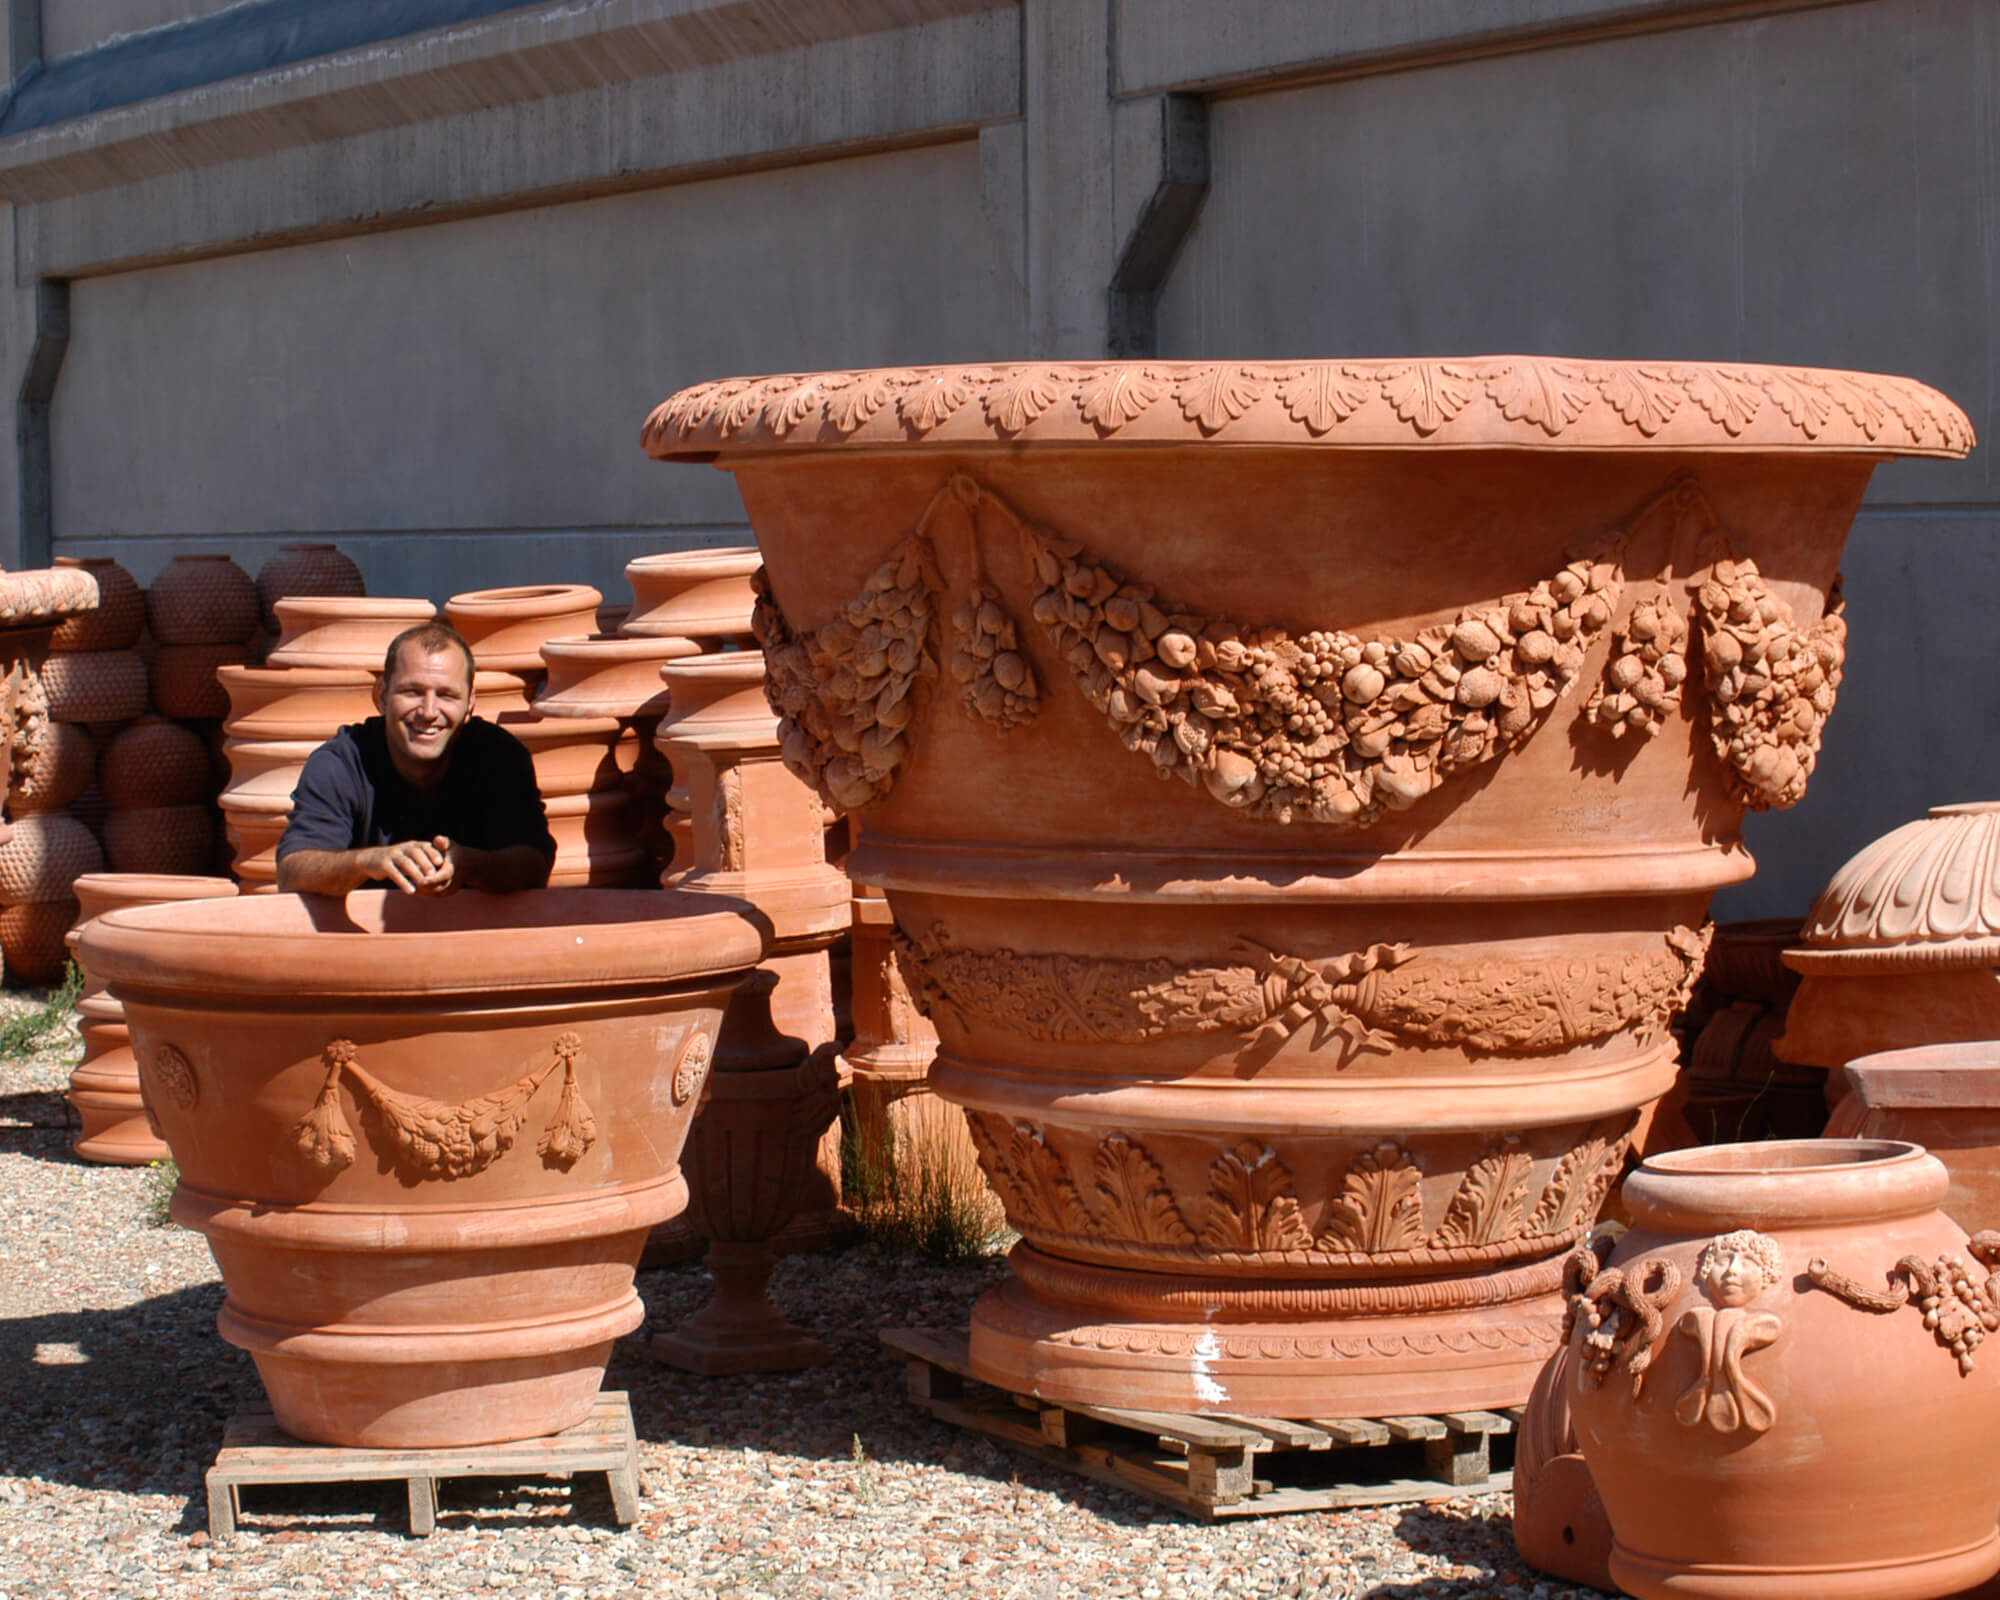 Top Tips for Cleaning Your Terracotta Garden Pots